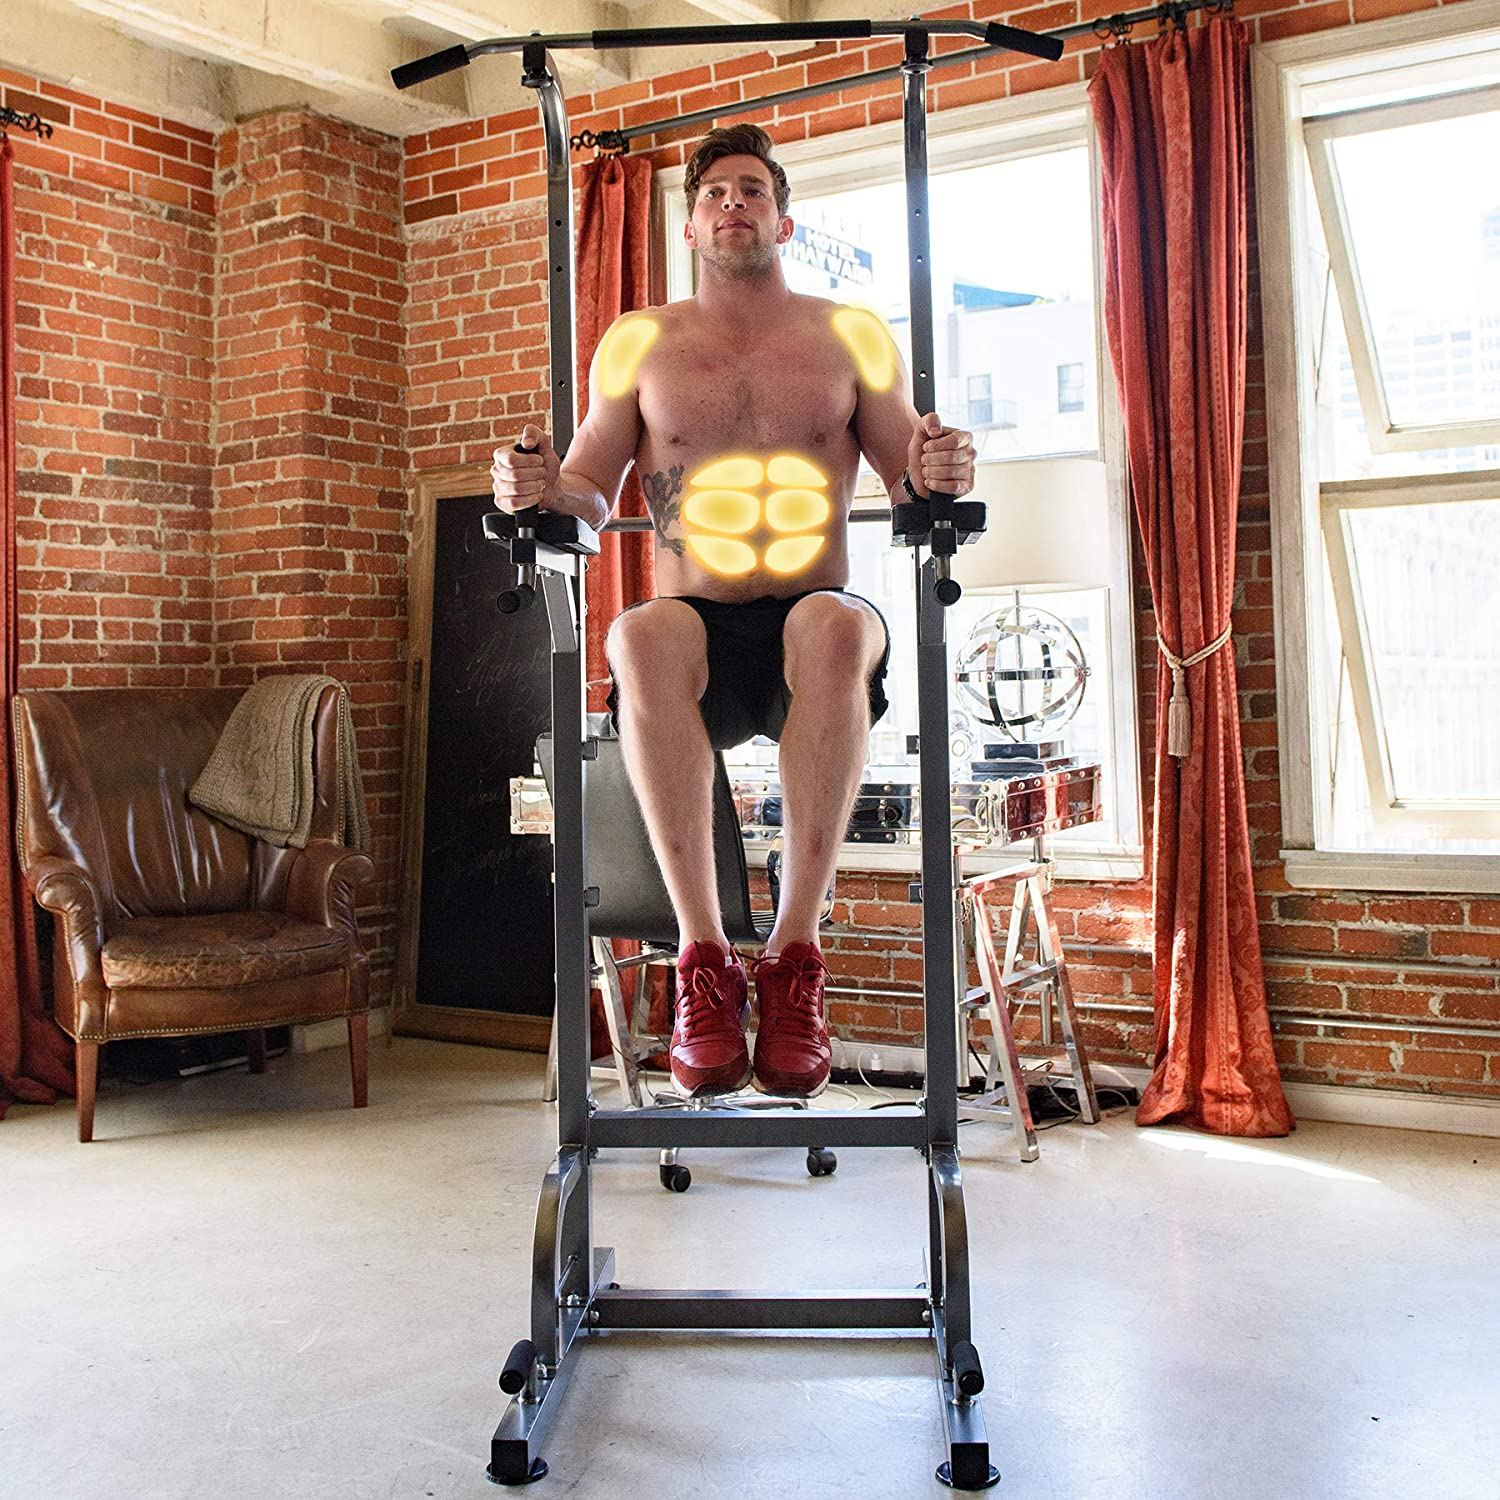 RELIFE REBUILD YOUR LIFE Power Tower Workout Dip Station for Home Gym